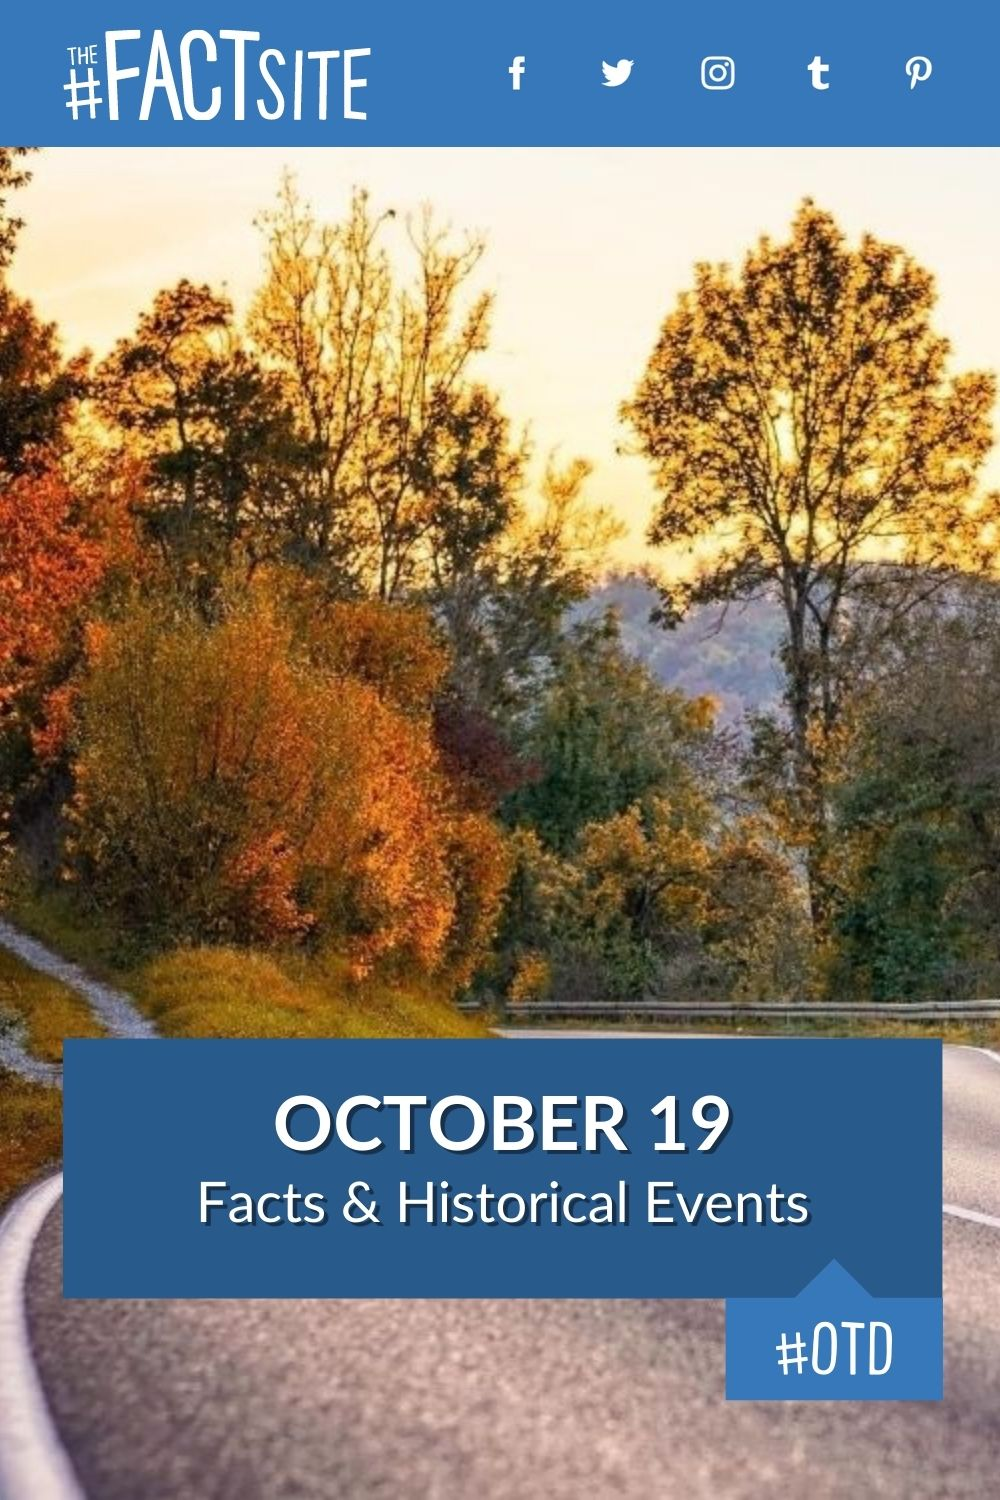 Facts & Historic Events That Happened on October 19